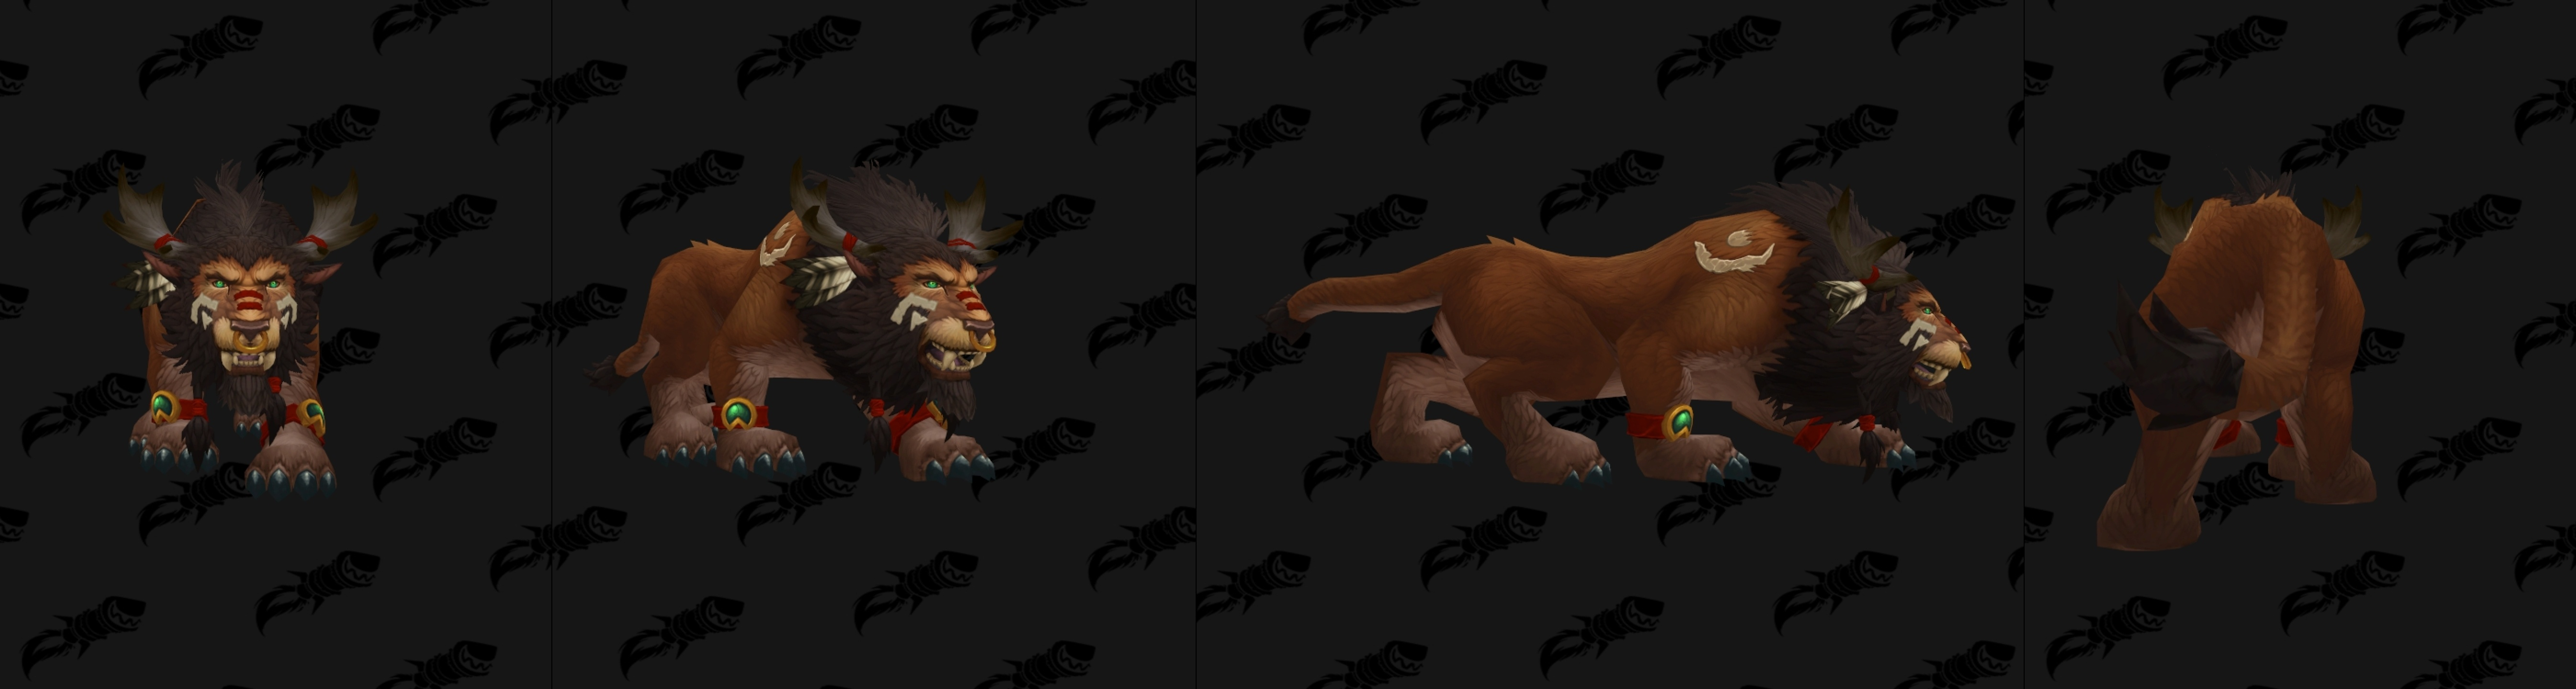 Highmountain tauren allied race druid forms totems and racial cat form nvjuhfo Choice Image